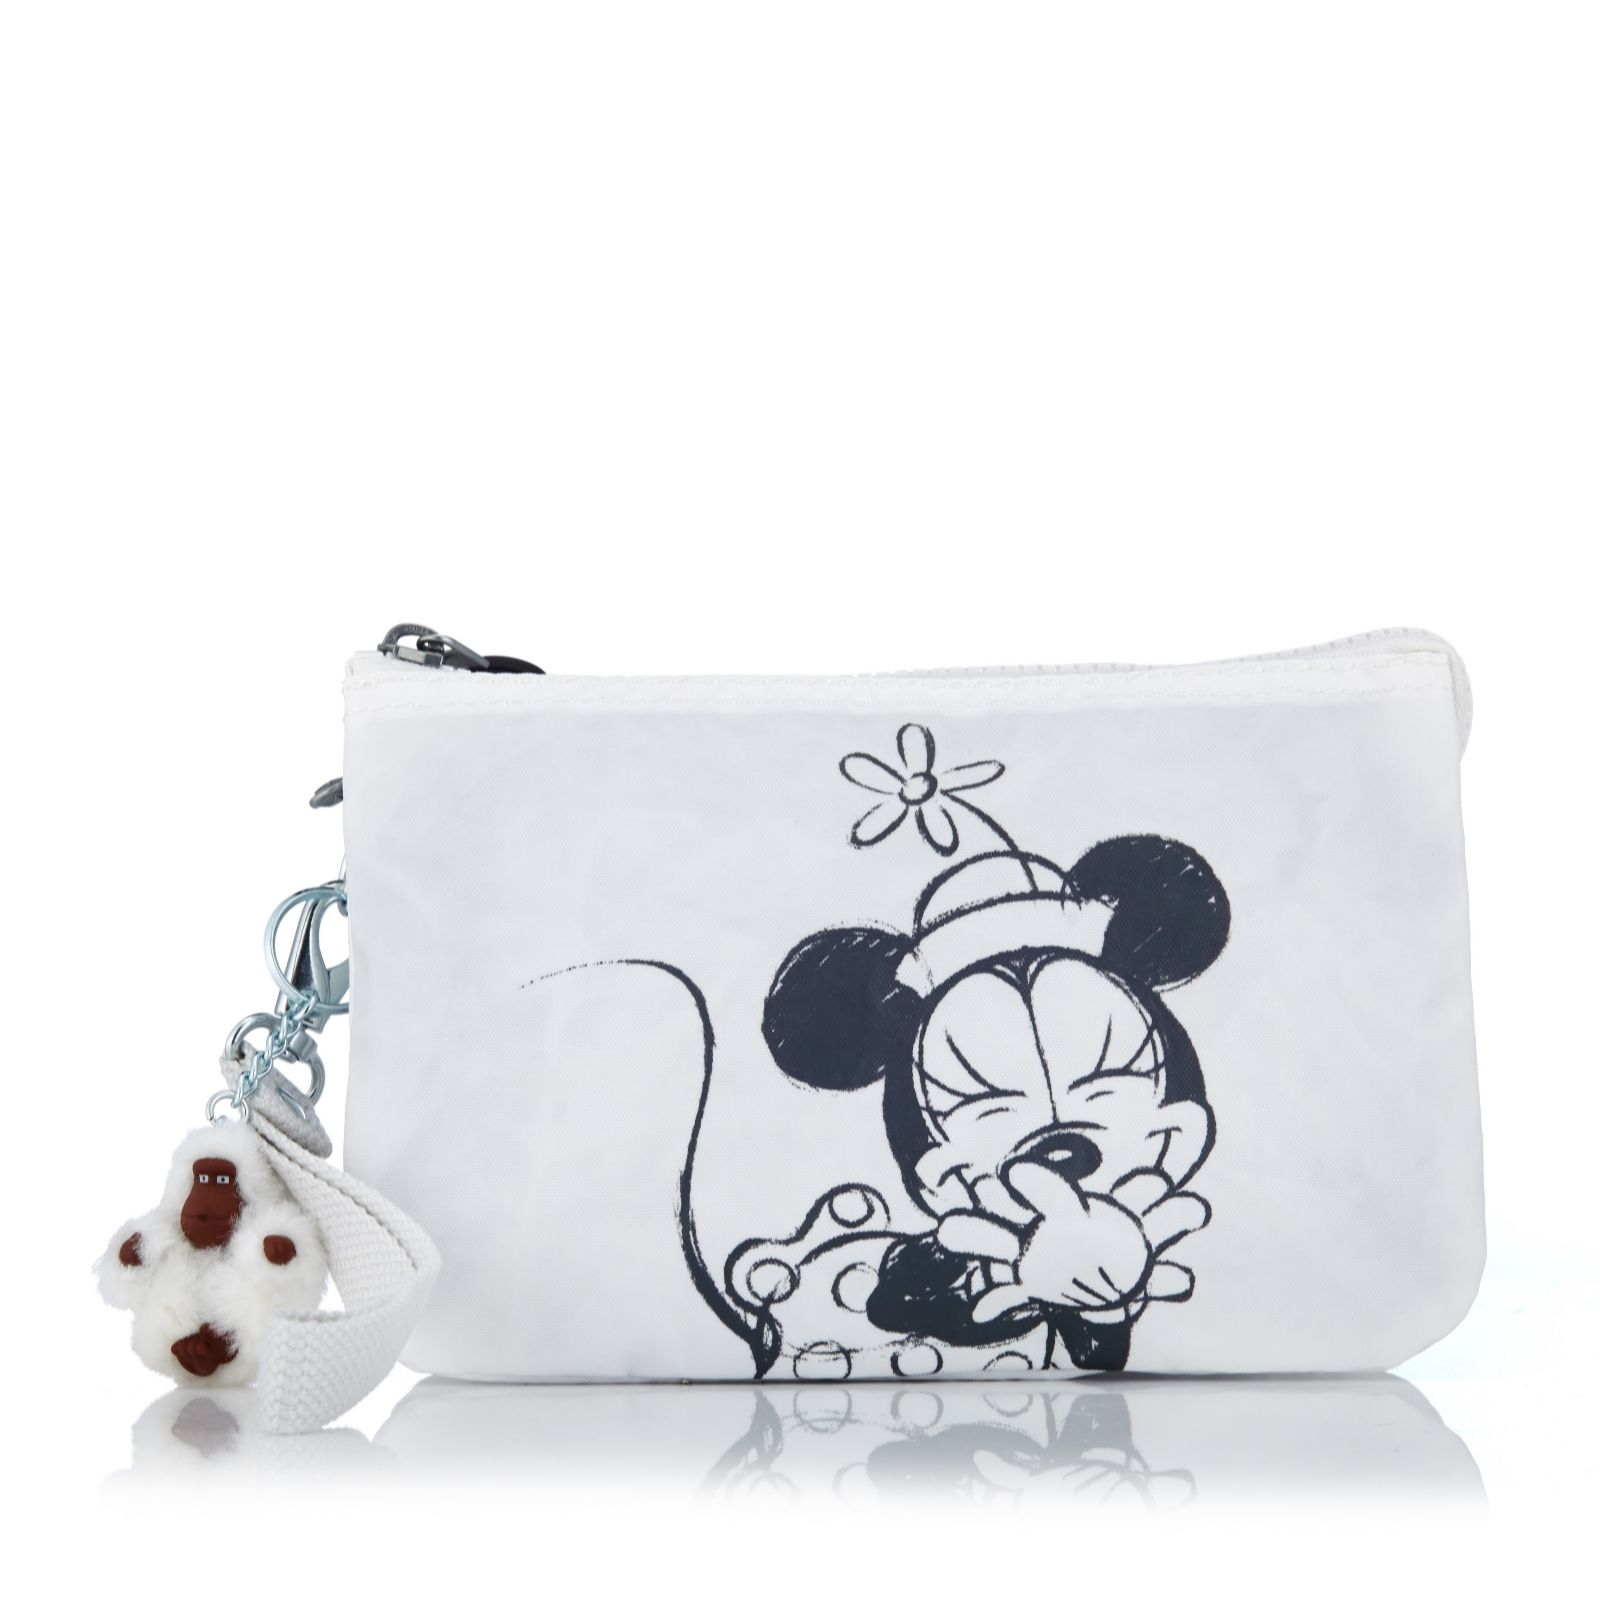 9932f9af49 Kipling Disney Mickey Creativity XL Pouch - QVC UK